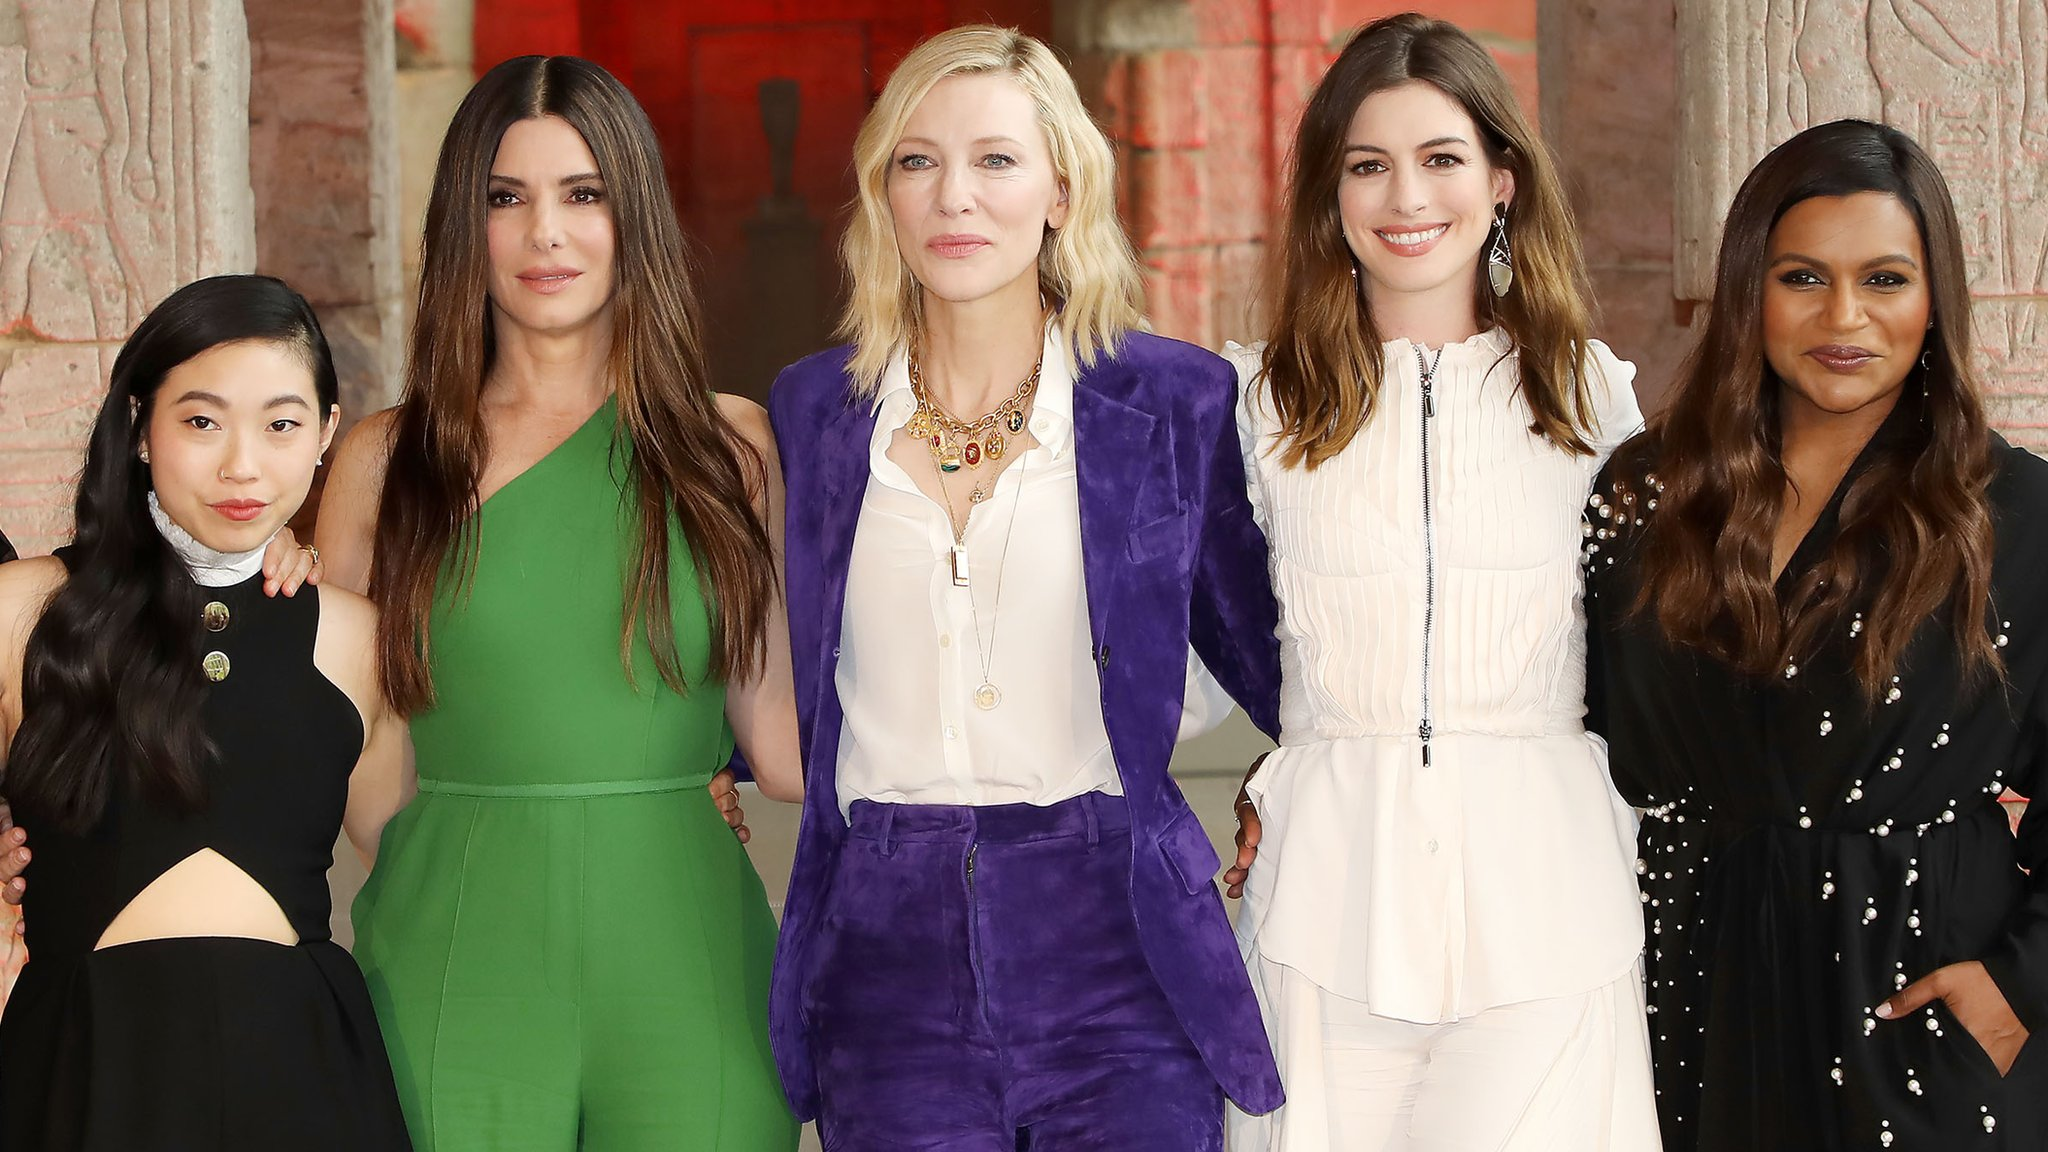 Ocean's 8: Why Cate Blanchett and Sandra Bullock want to 'stop being polite'